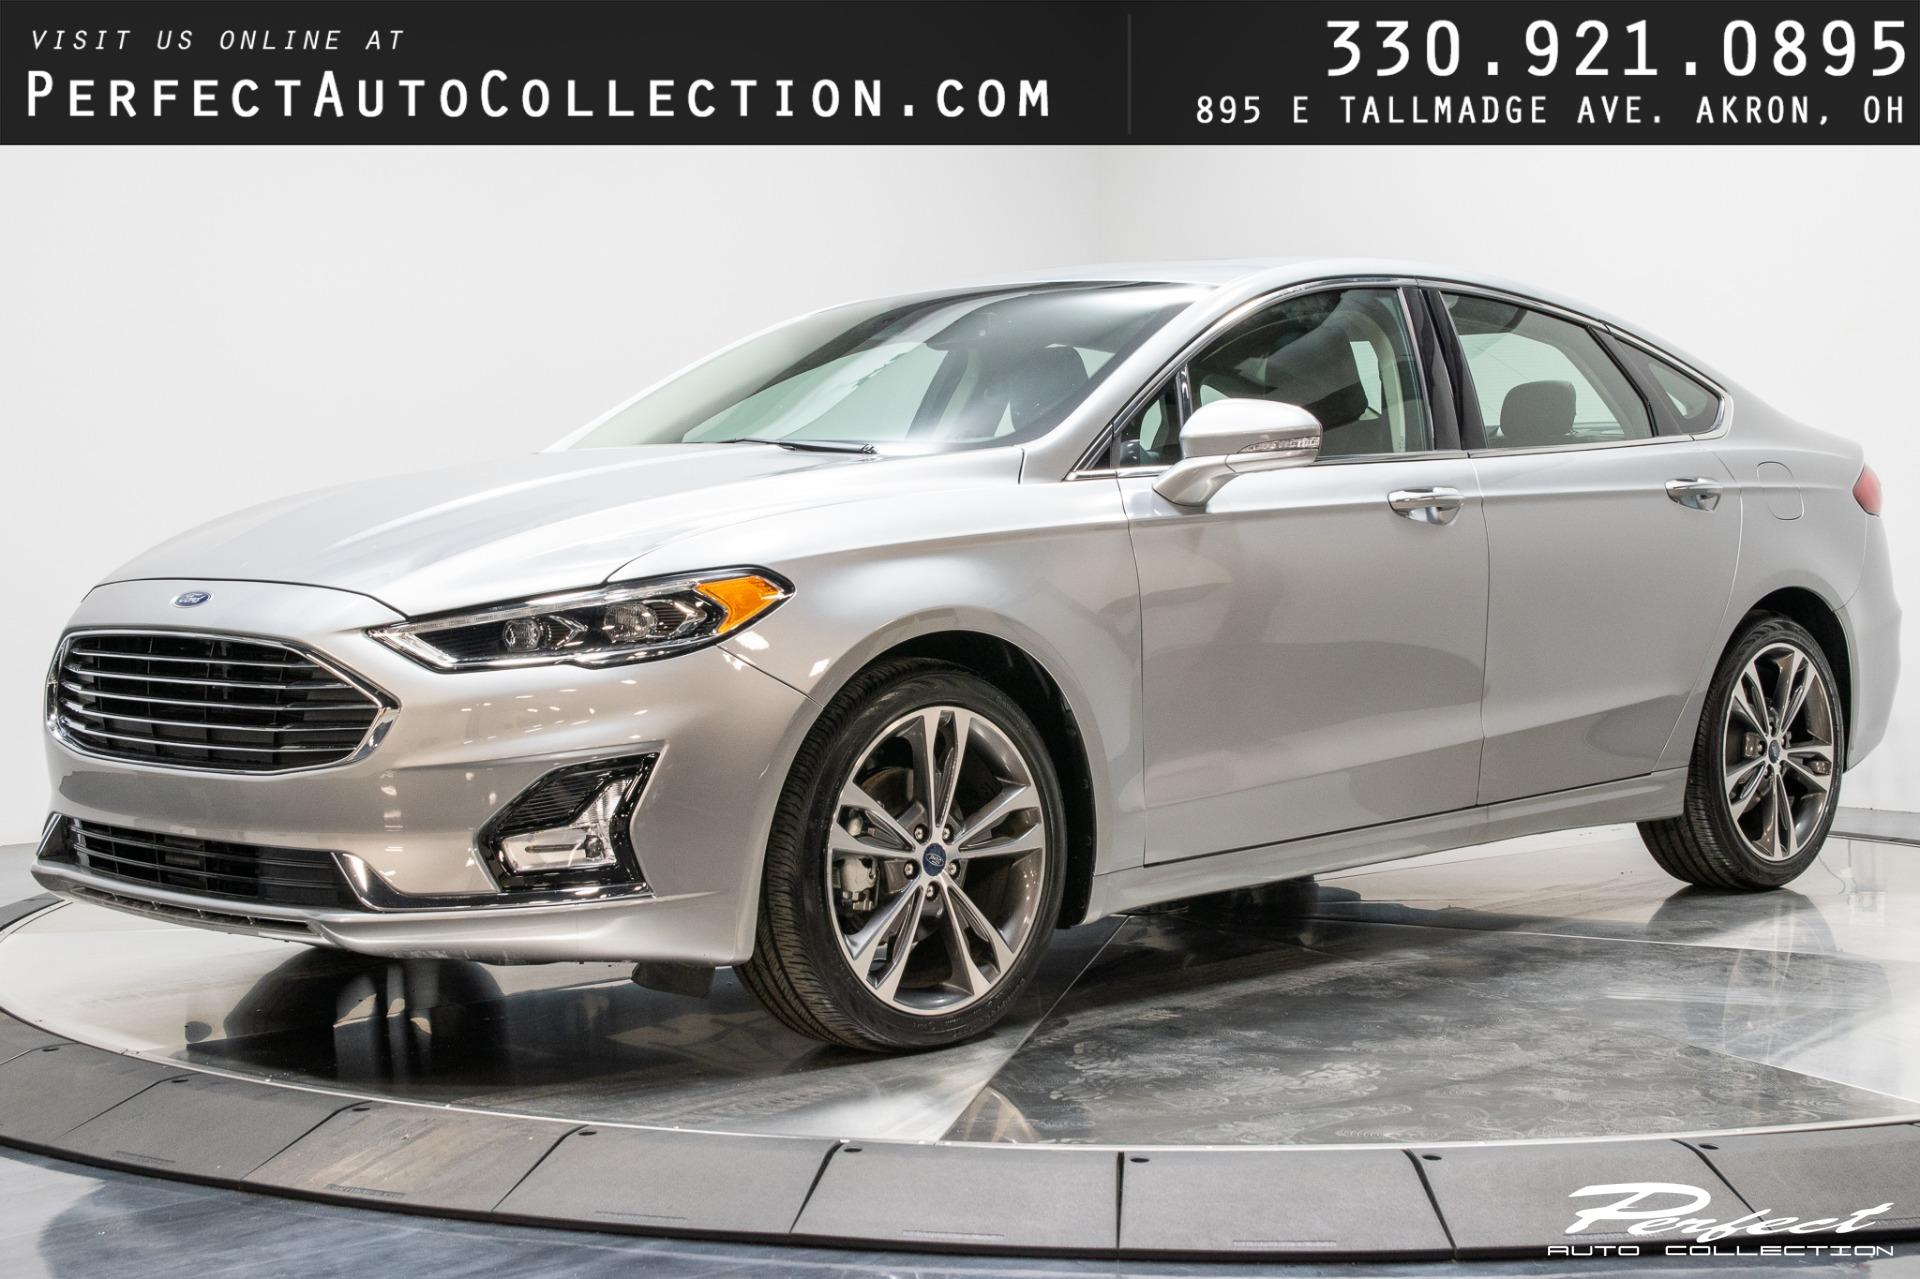 Used 2020 Ford Fusion Titanium for sale Sold at Perfect Auto Collection in Akron OH 44310 1